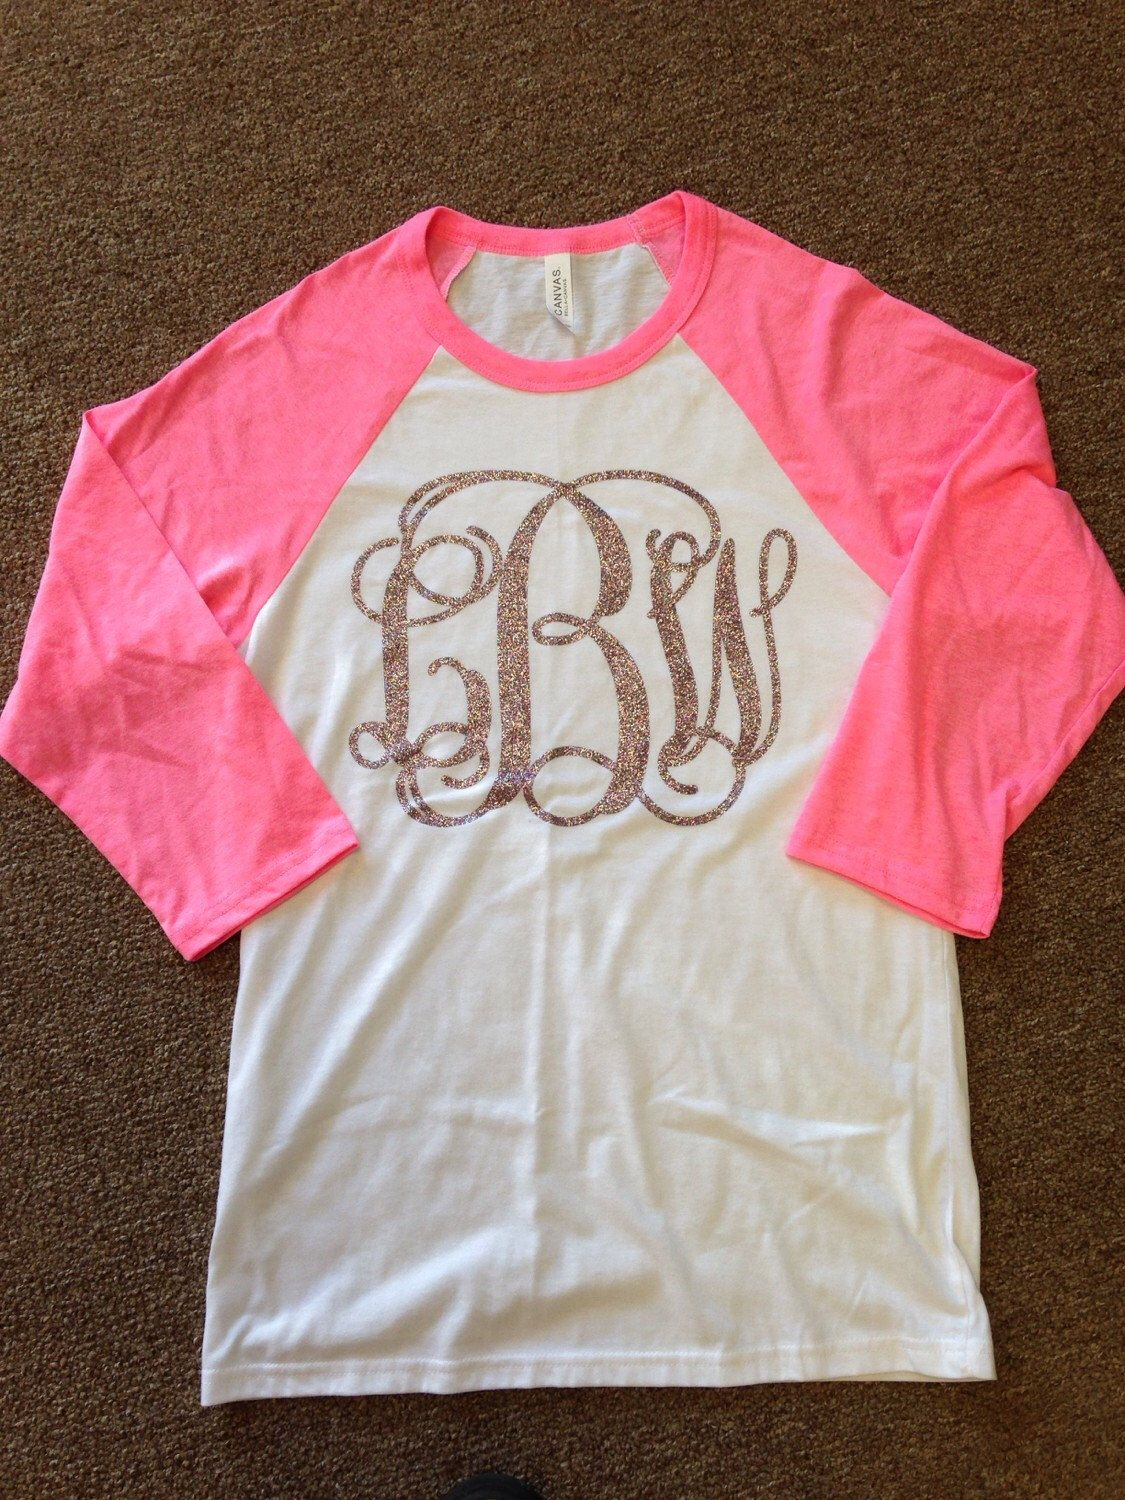 Pin By El On Cricut Shirt Baseball Tee Shirts Monogram